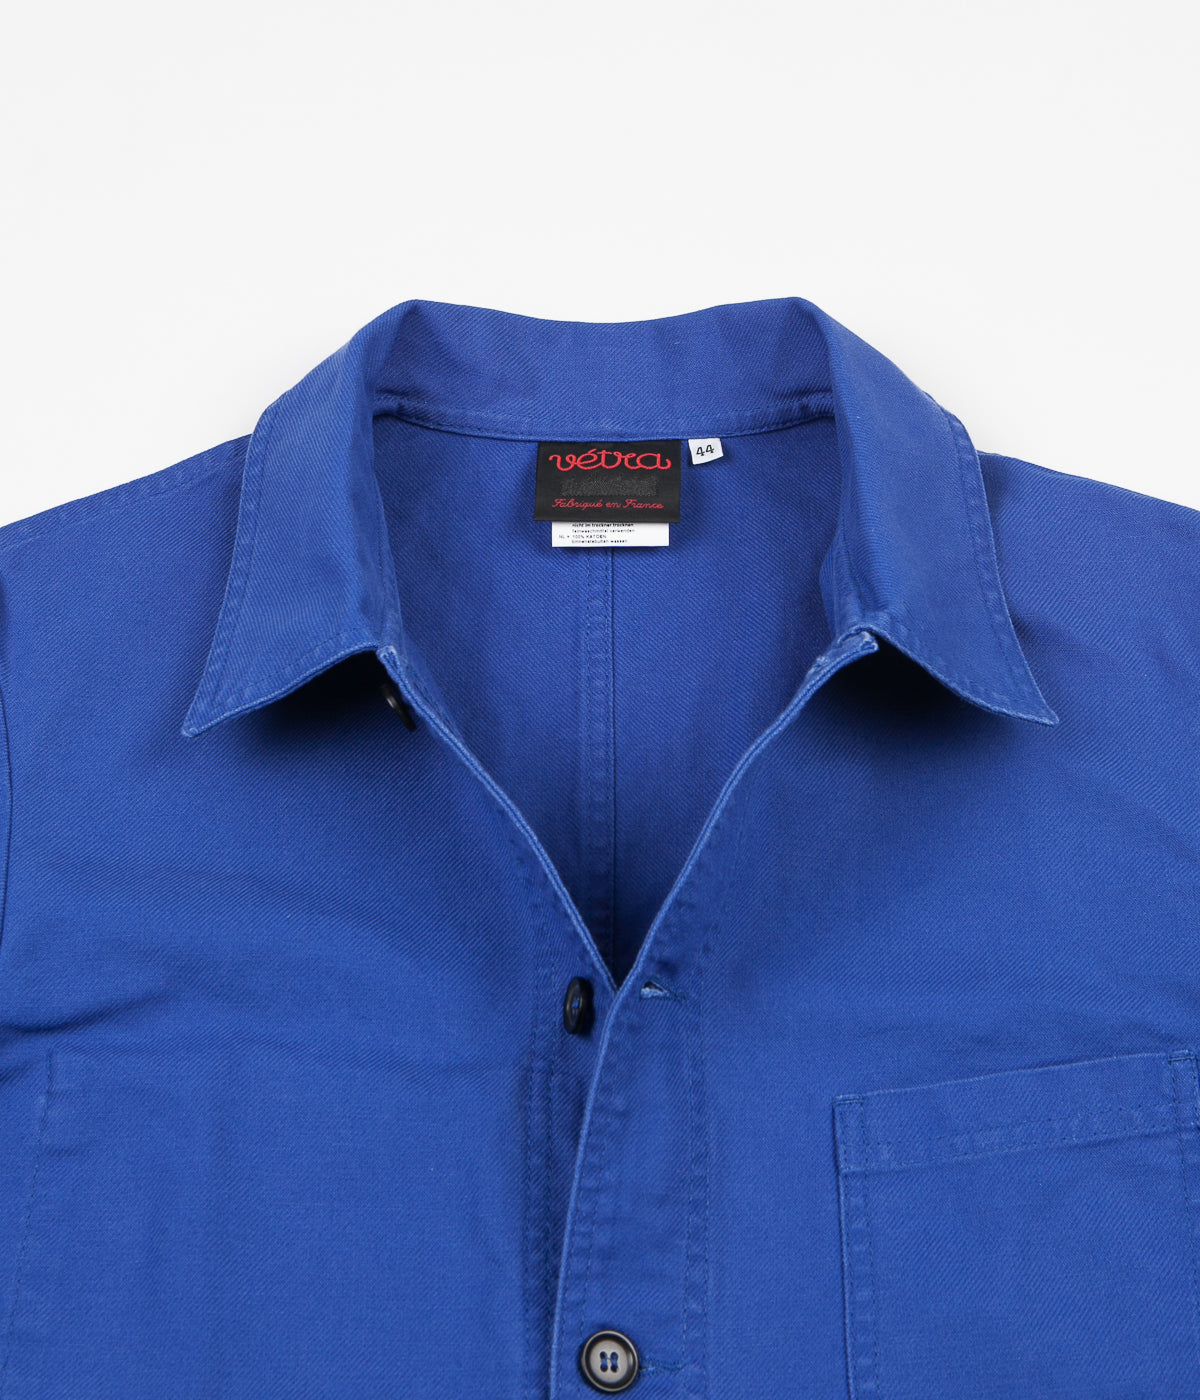 Vetra No.4 Workwear Jacket - Bugatti